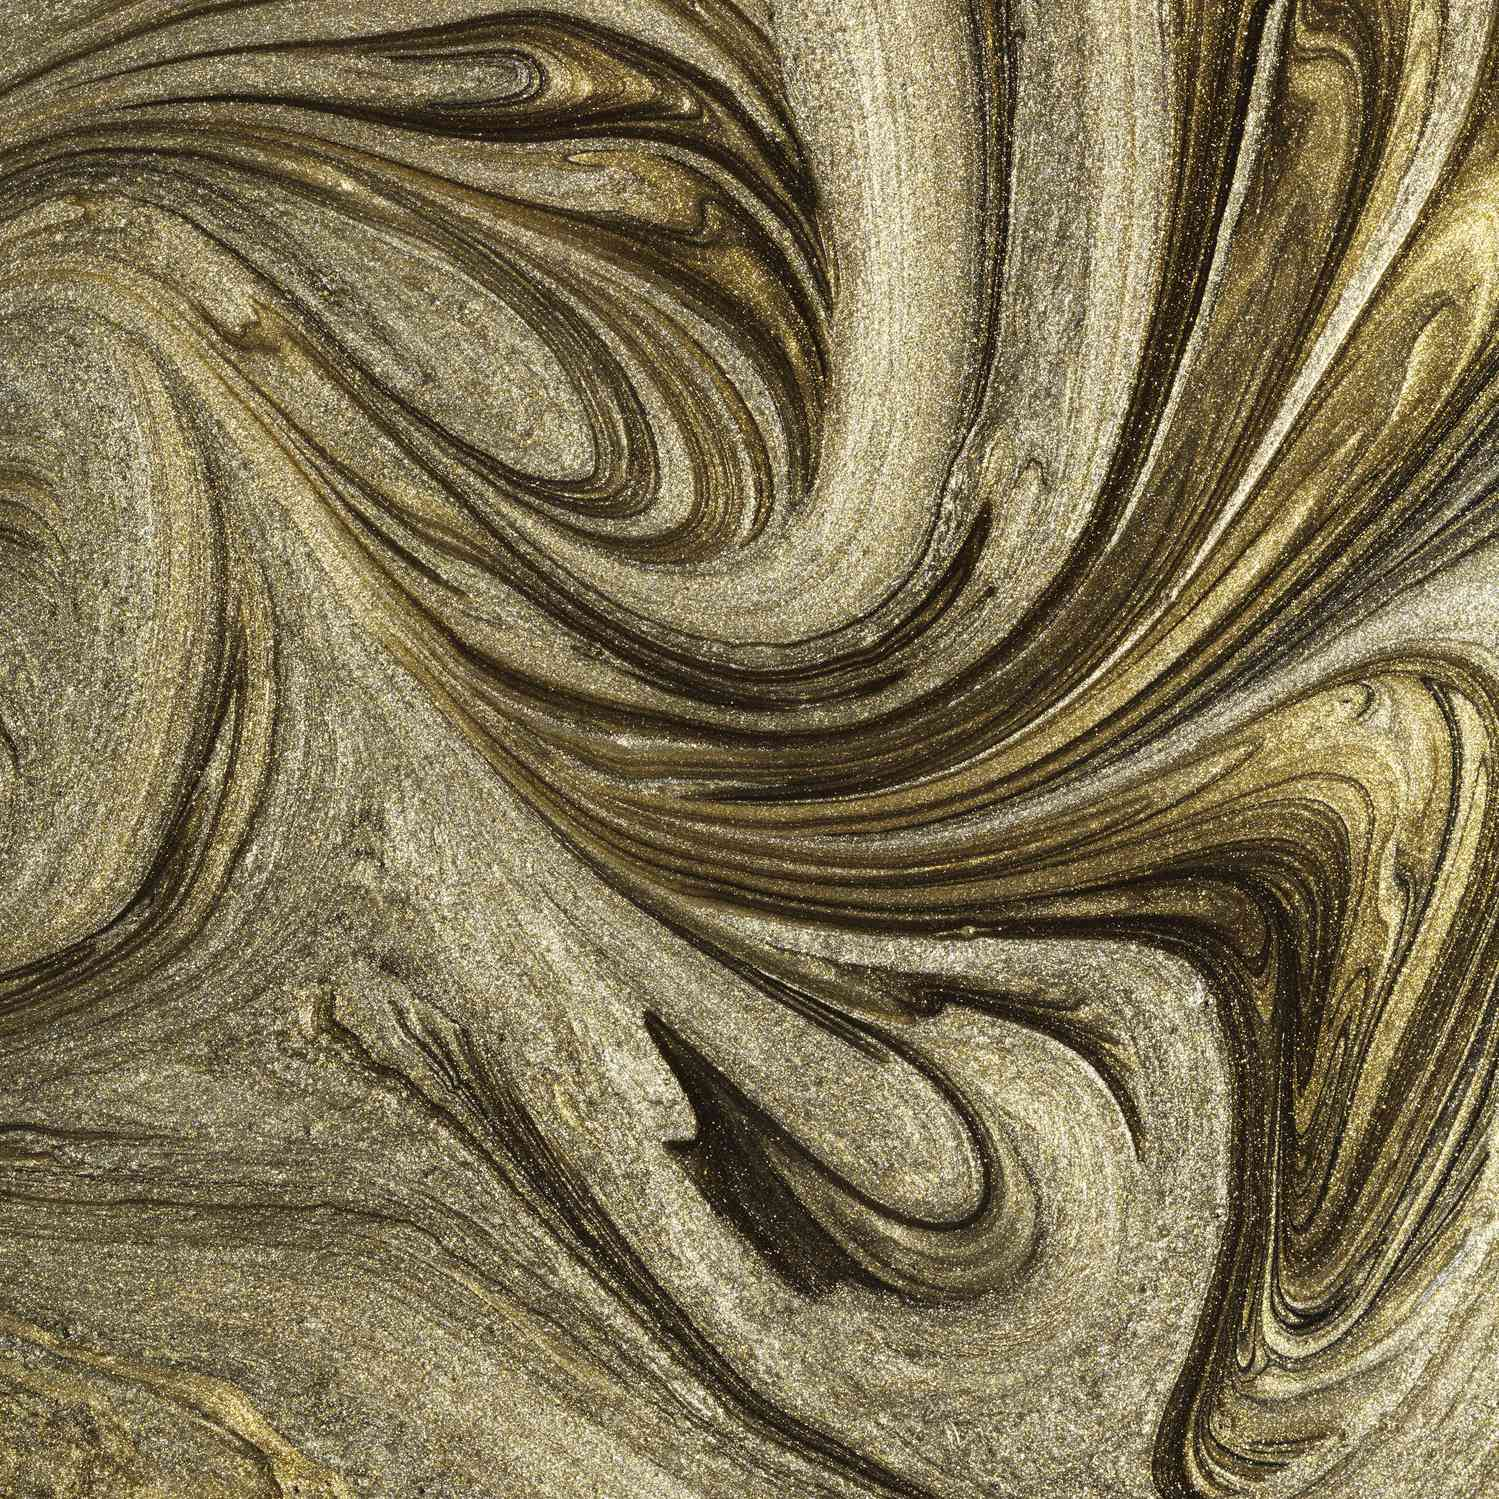 Metallic Wall Finishes That Add Sparkle To Your Home